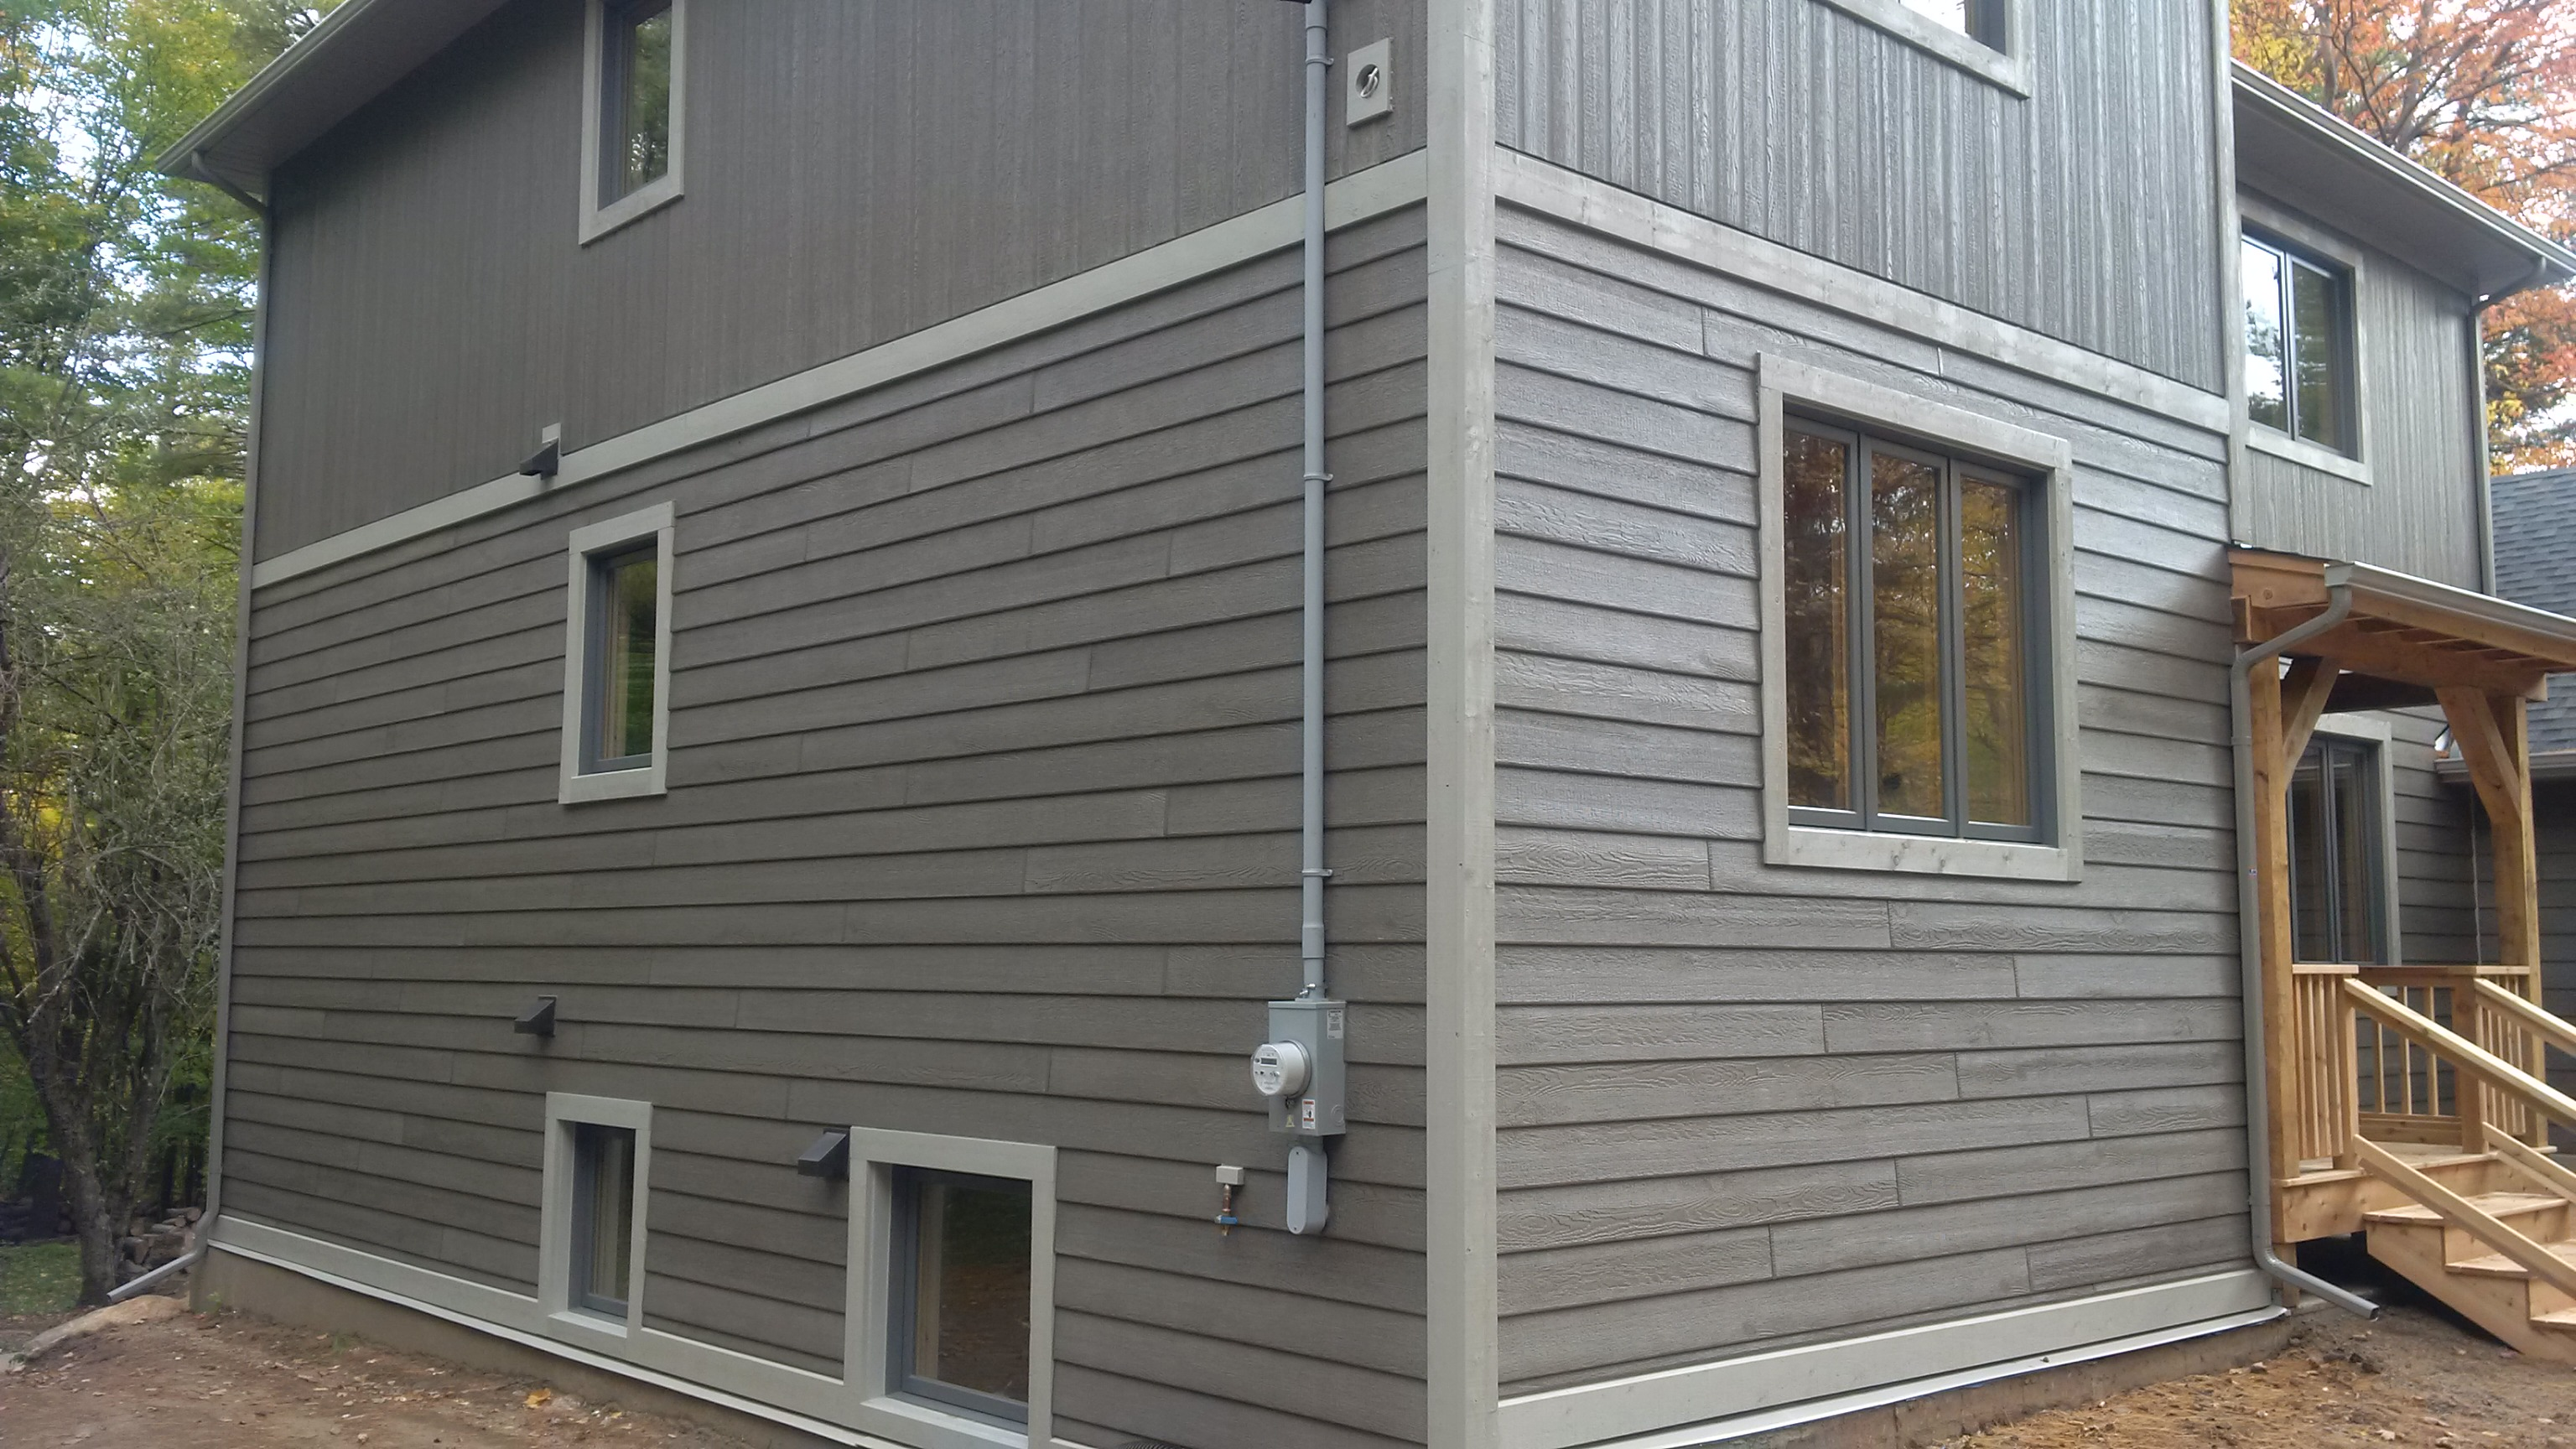 7 Popular Siding Materials To Consider: Wood Grain Siding Products